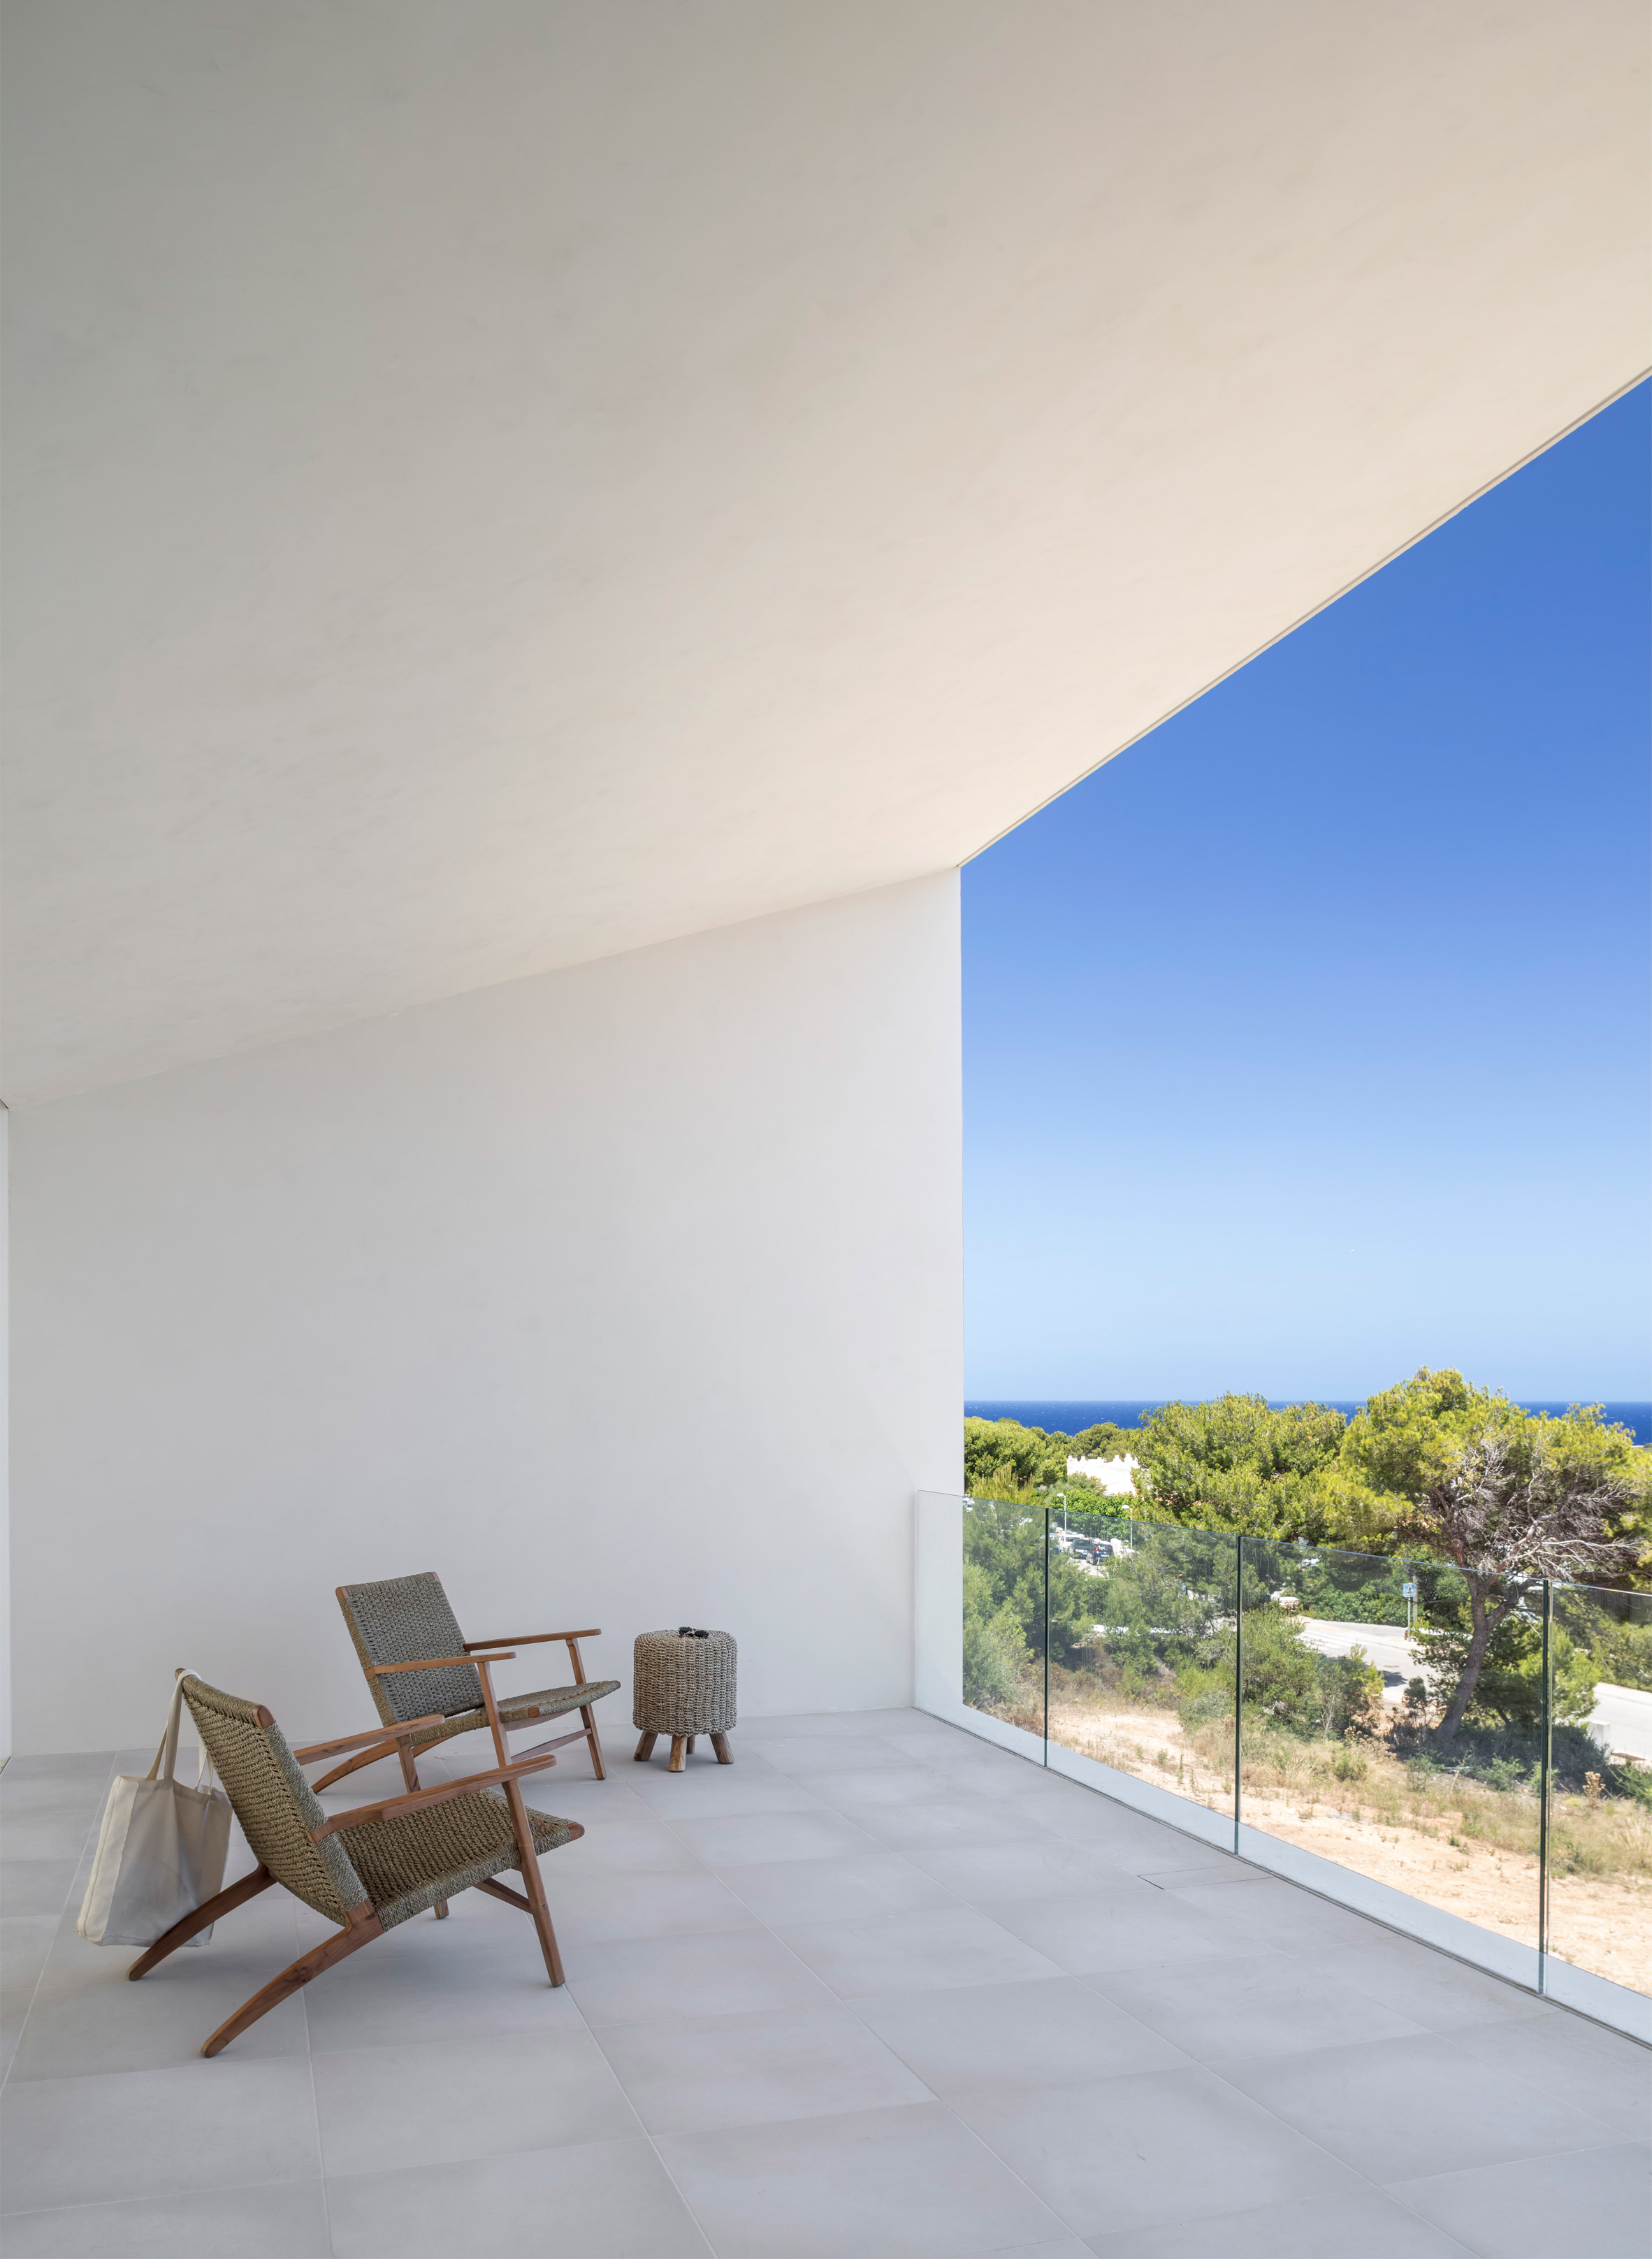 Frame House by Nomo Studio in Menorca